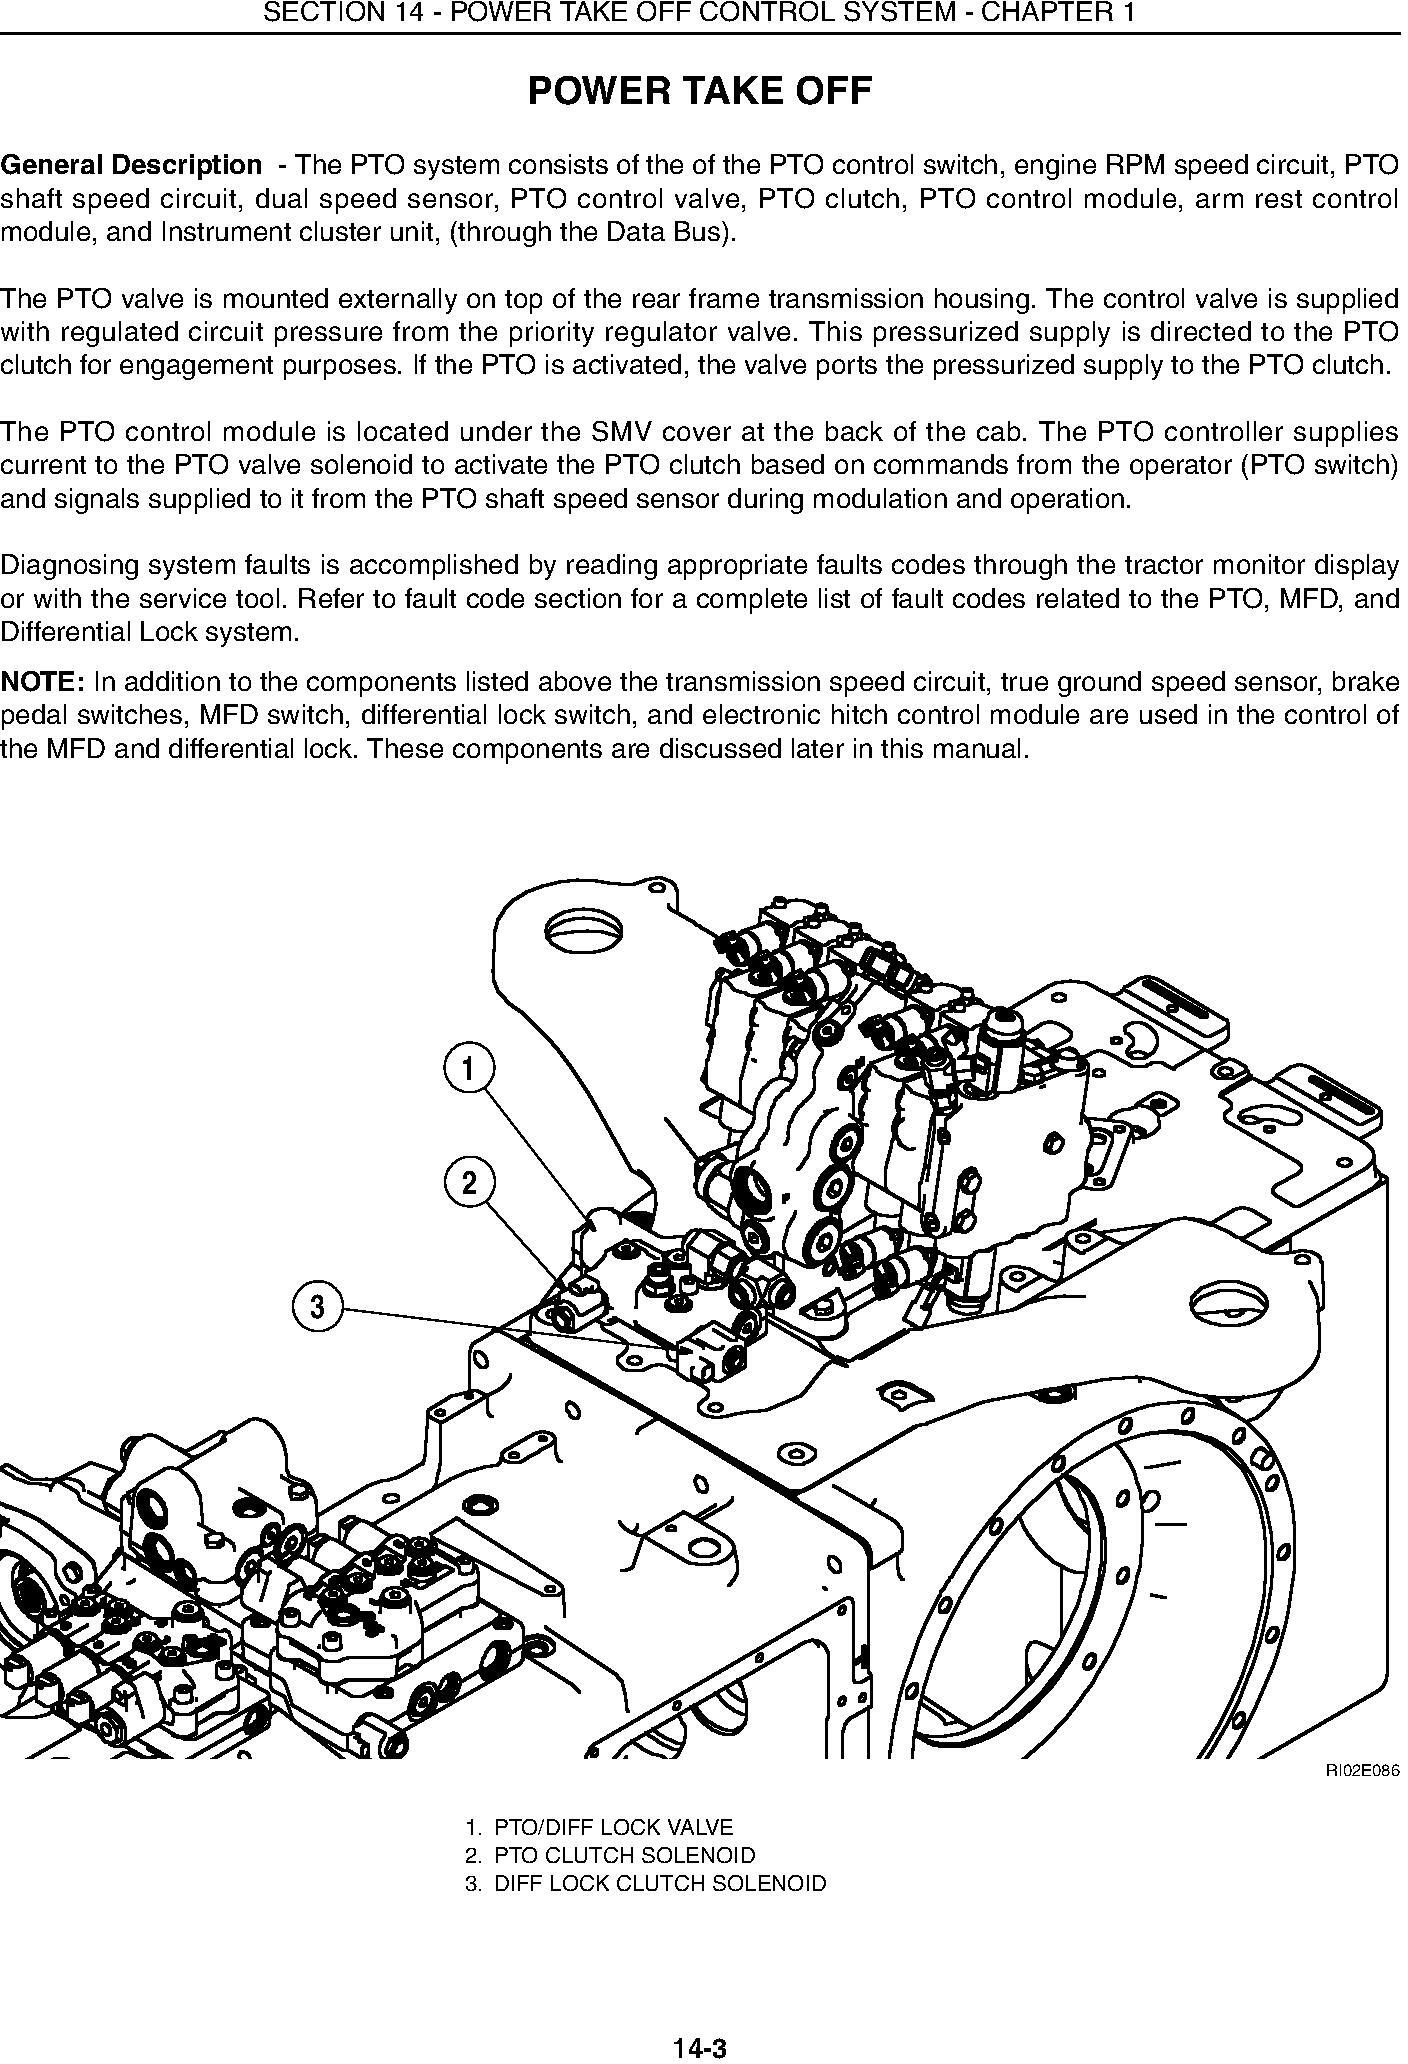 New Holland TG210, TG230, TG255, TG285 Tractor Complete Service Manual - 3